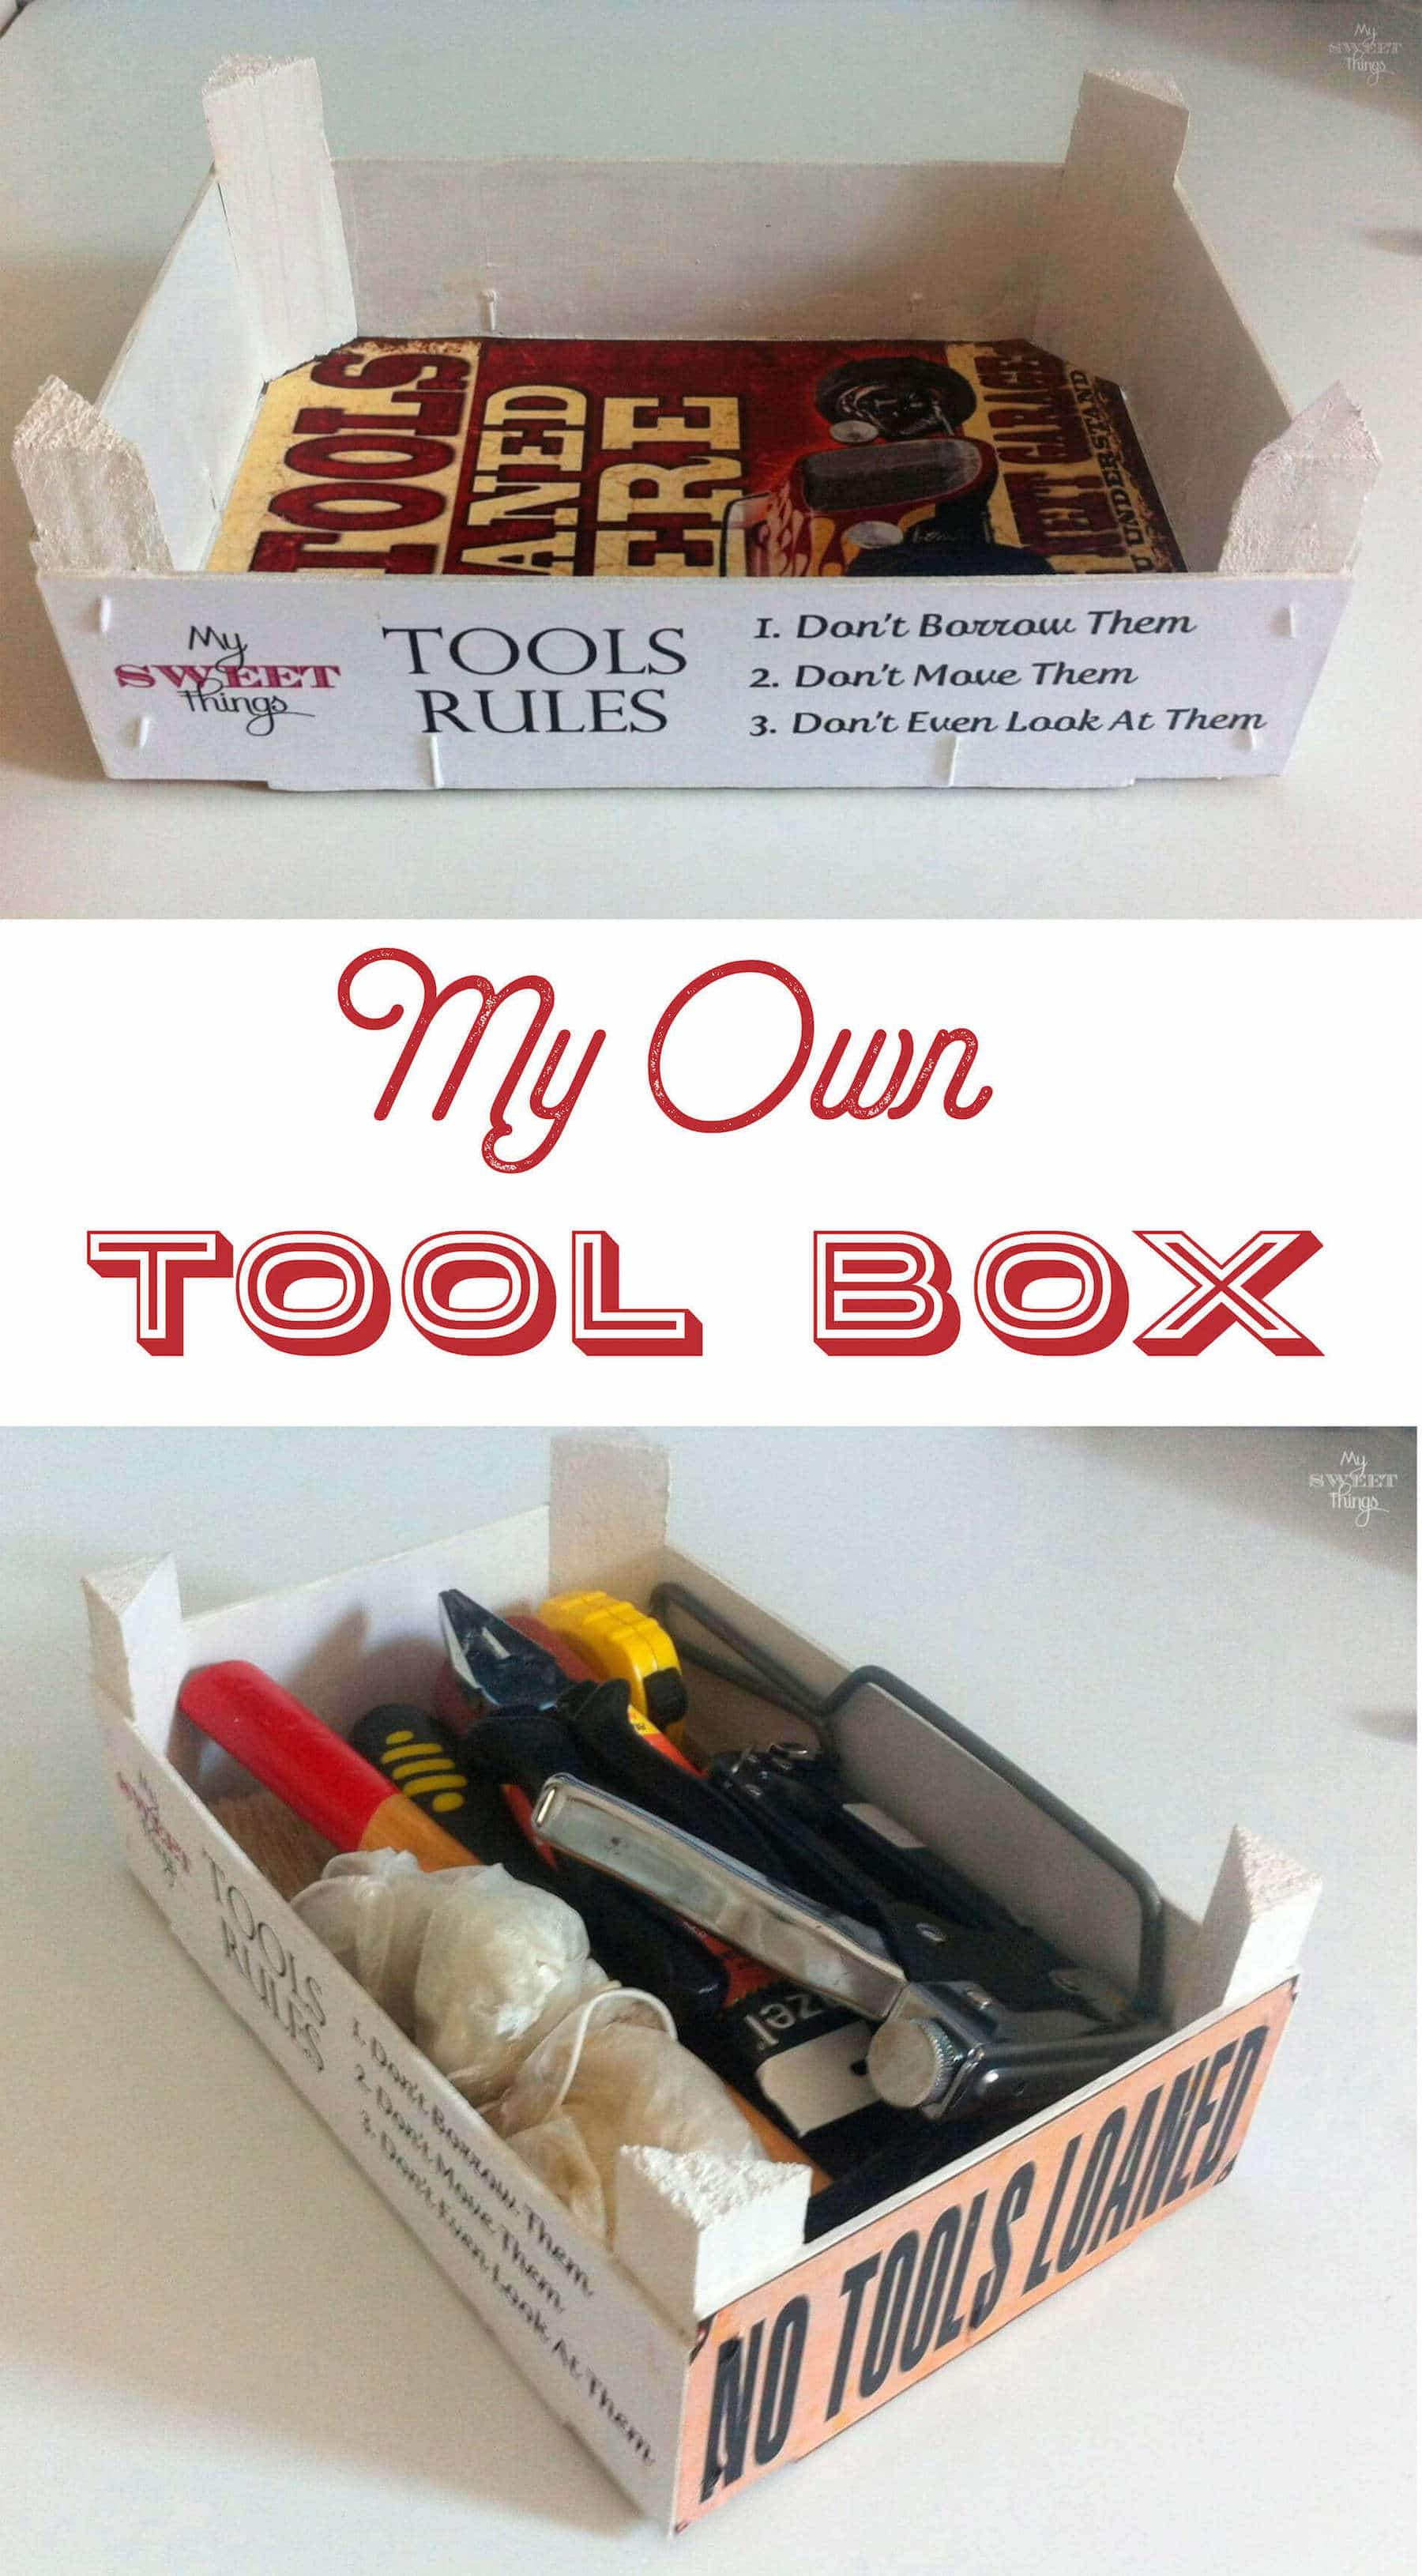 How to make a tool box out of a crate | Via www.sweethings.net